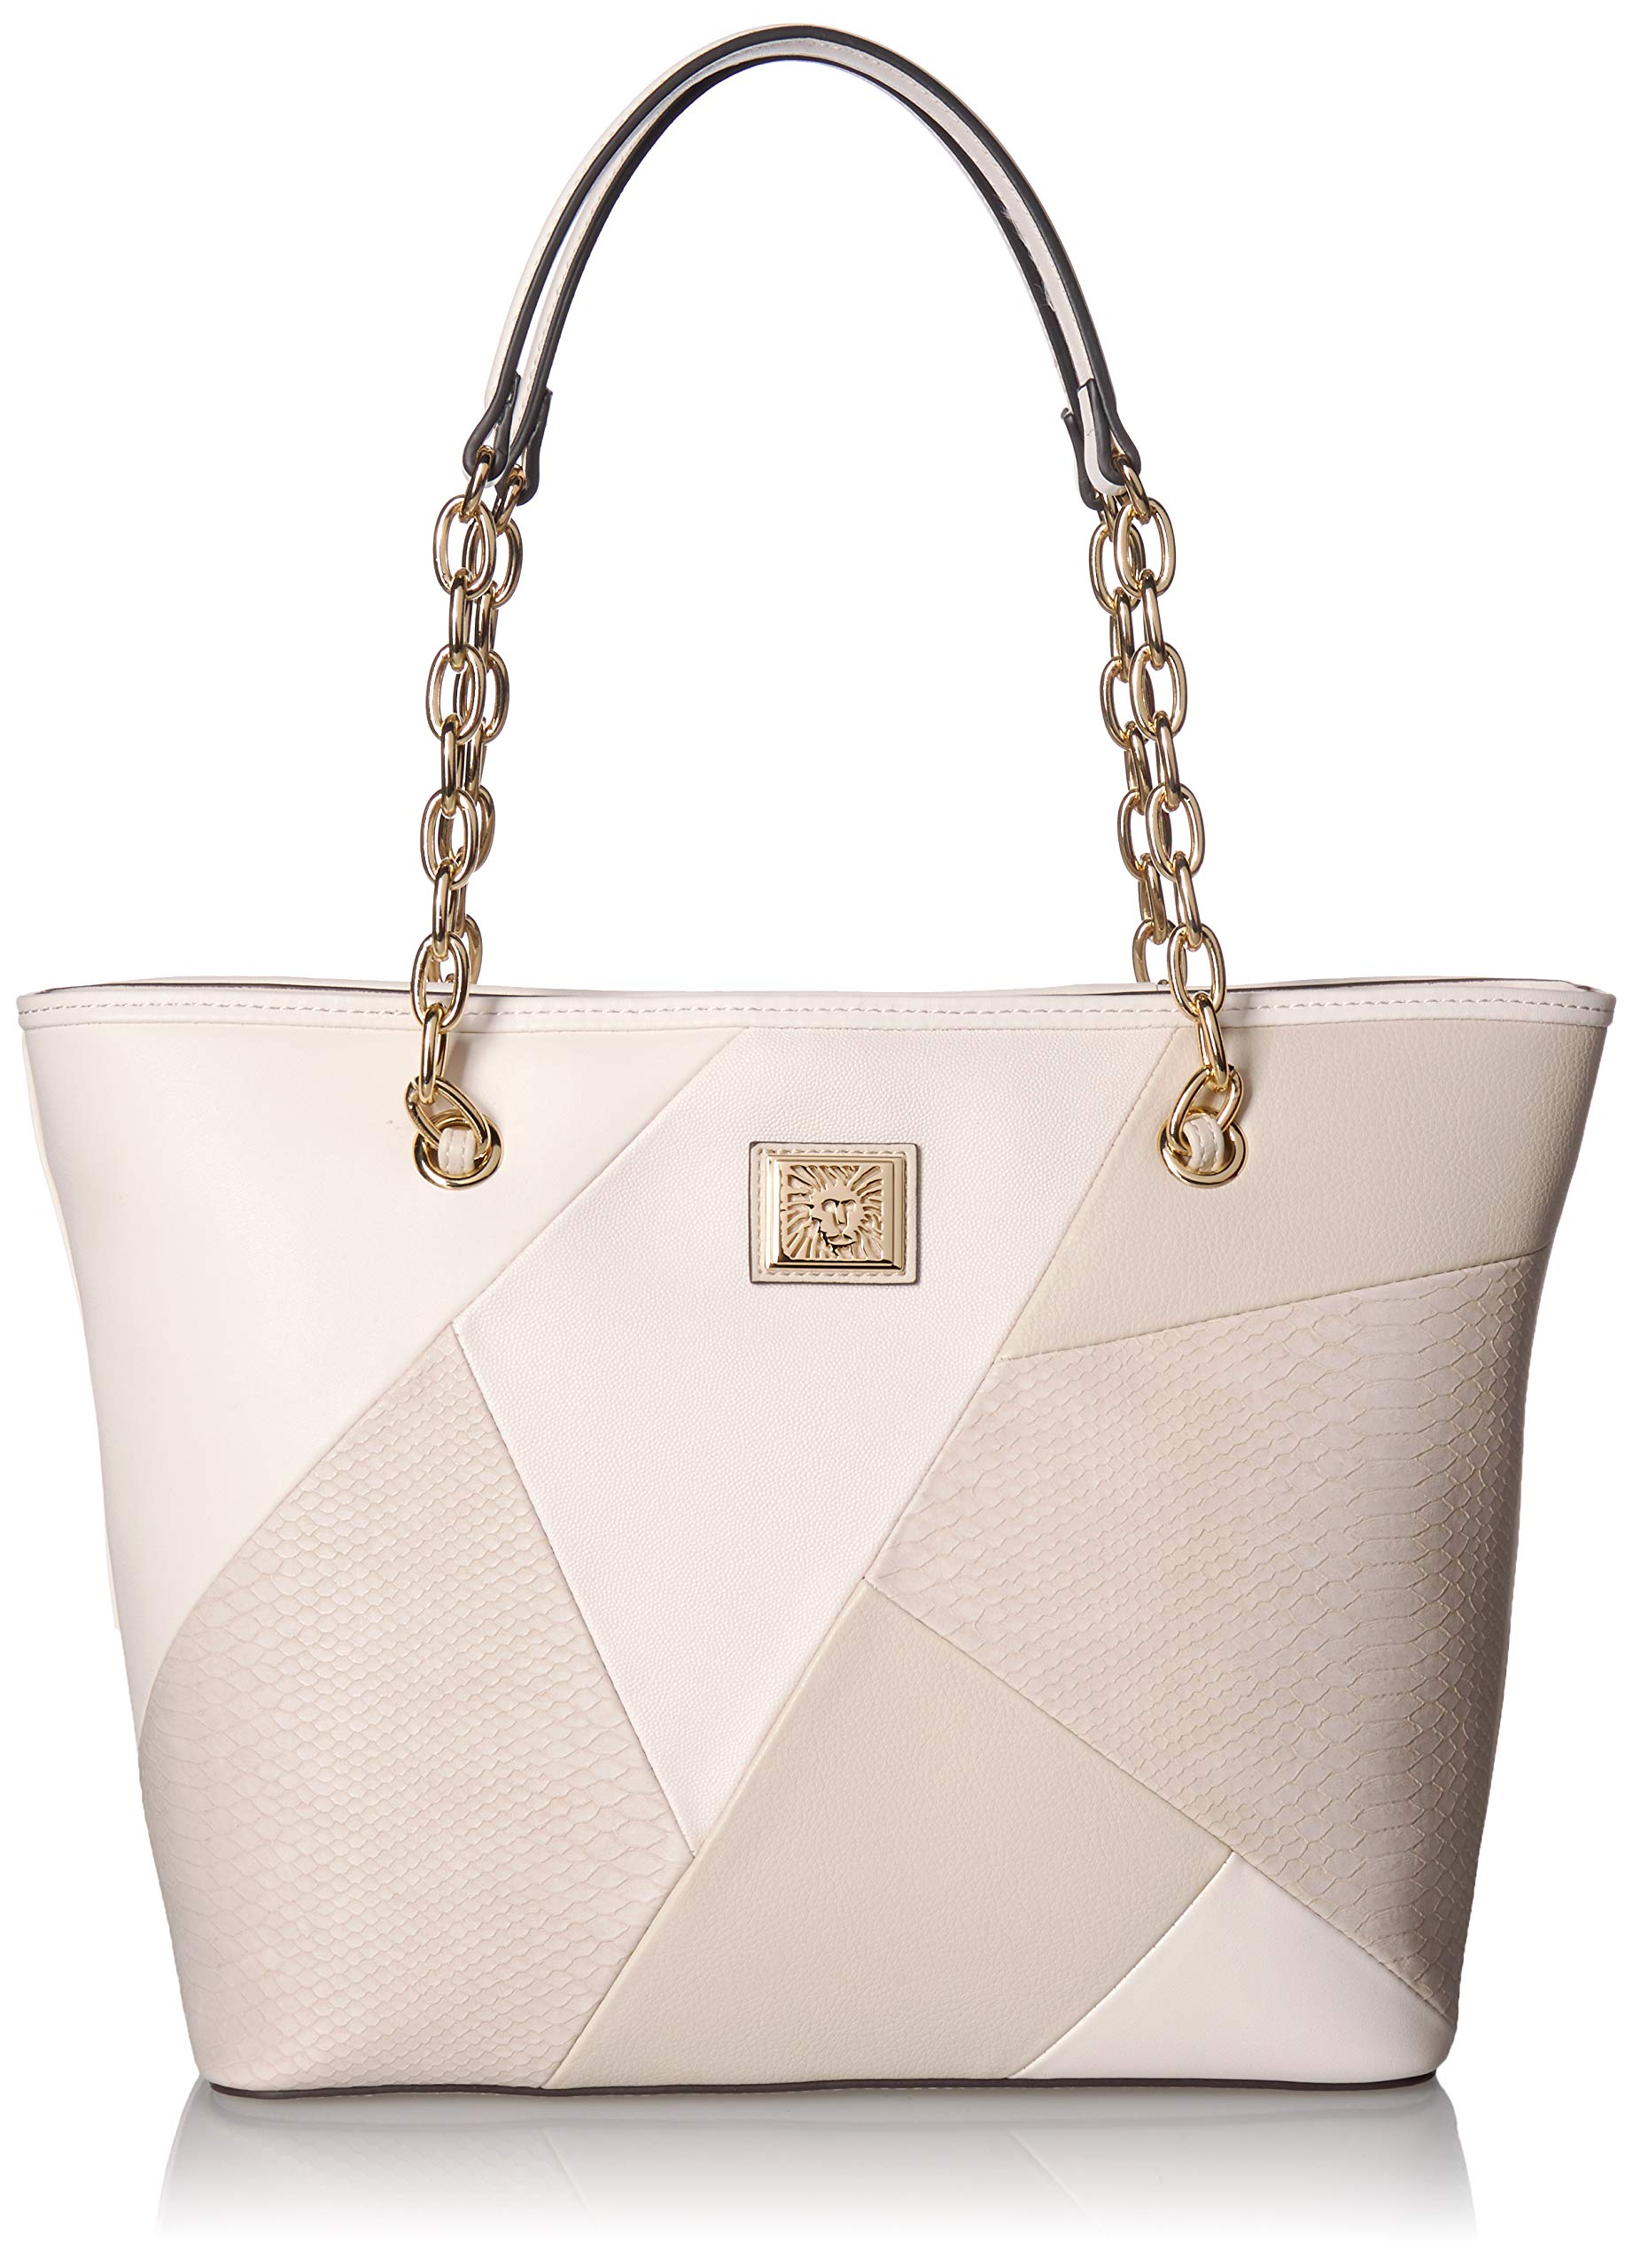 Anne Klein Patchwork Perfection Tote, oyster